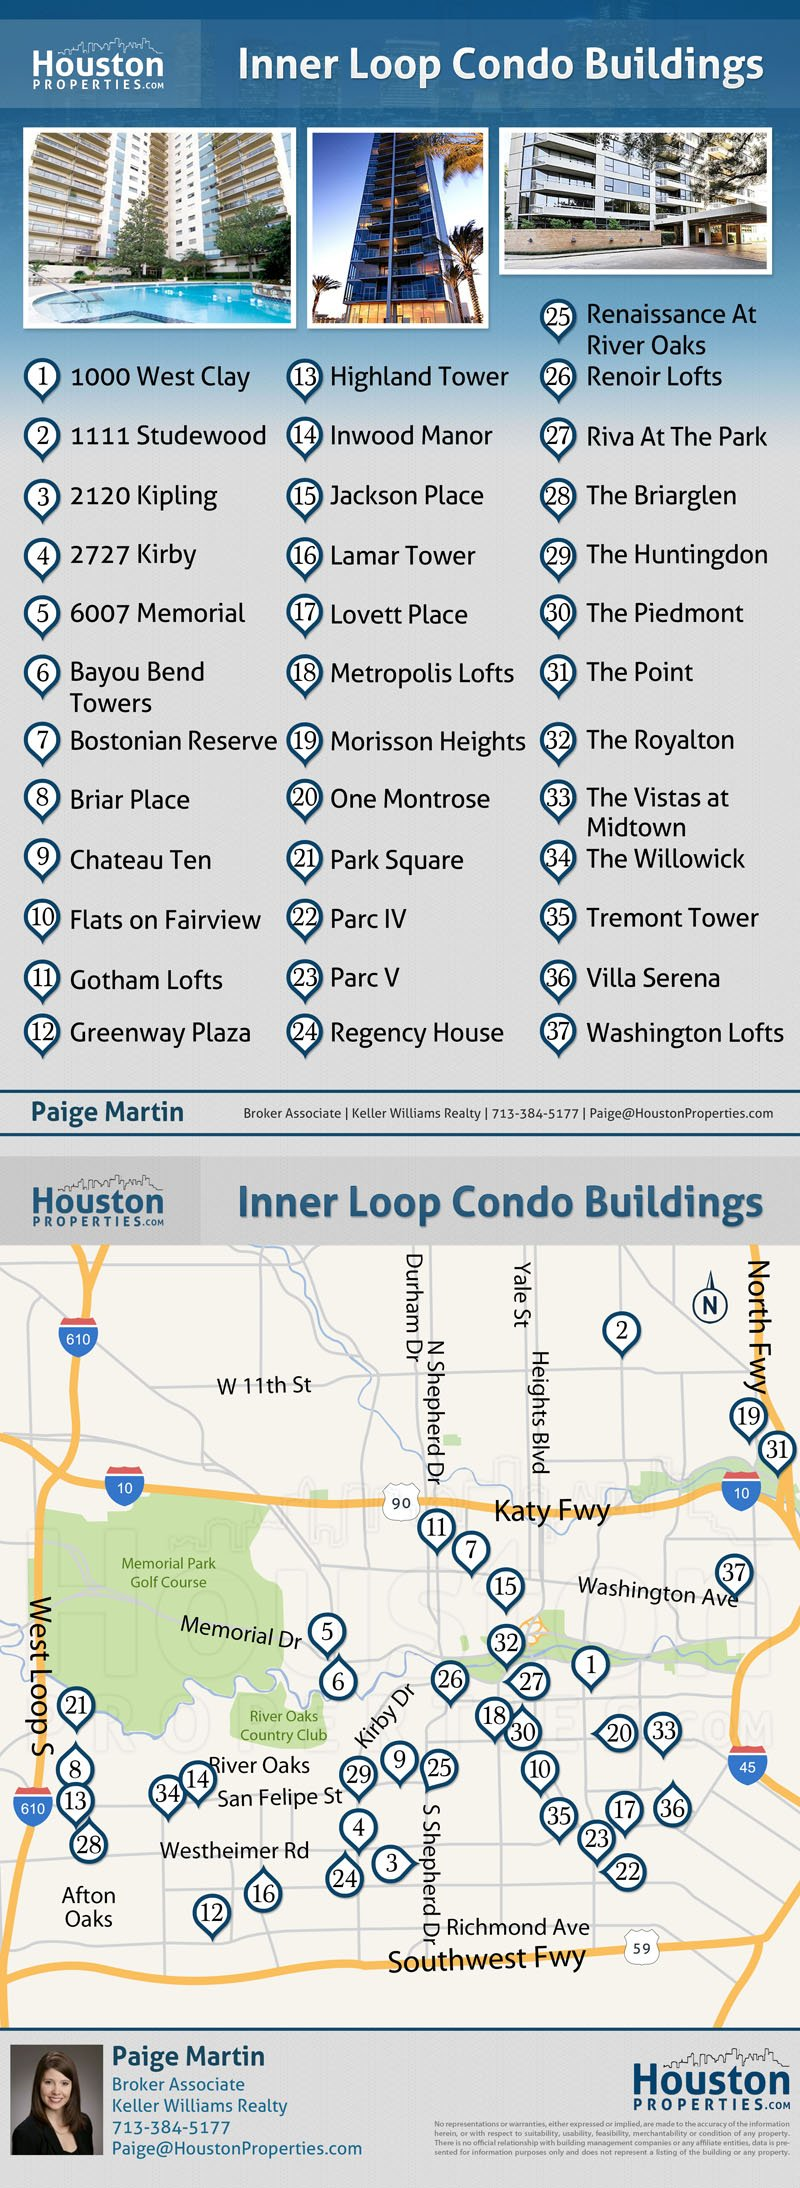 royalton condo, river oaks Map